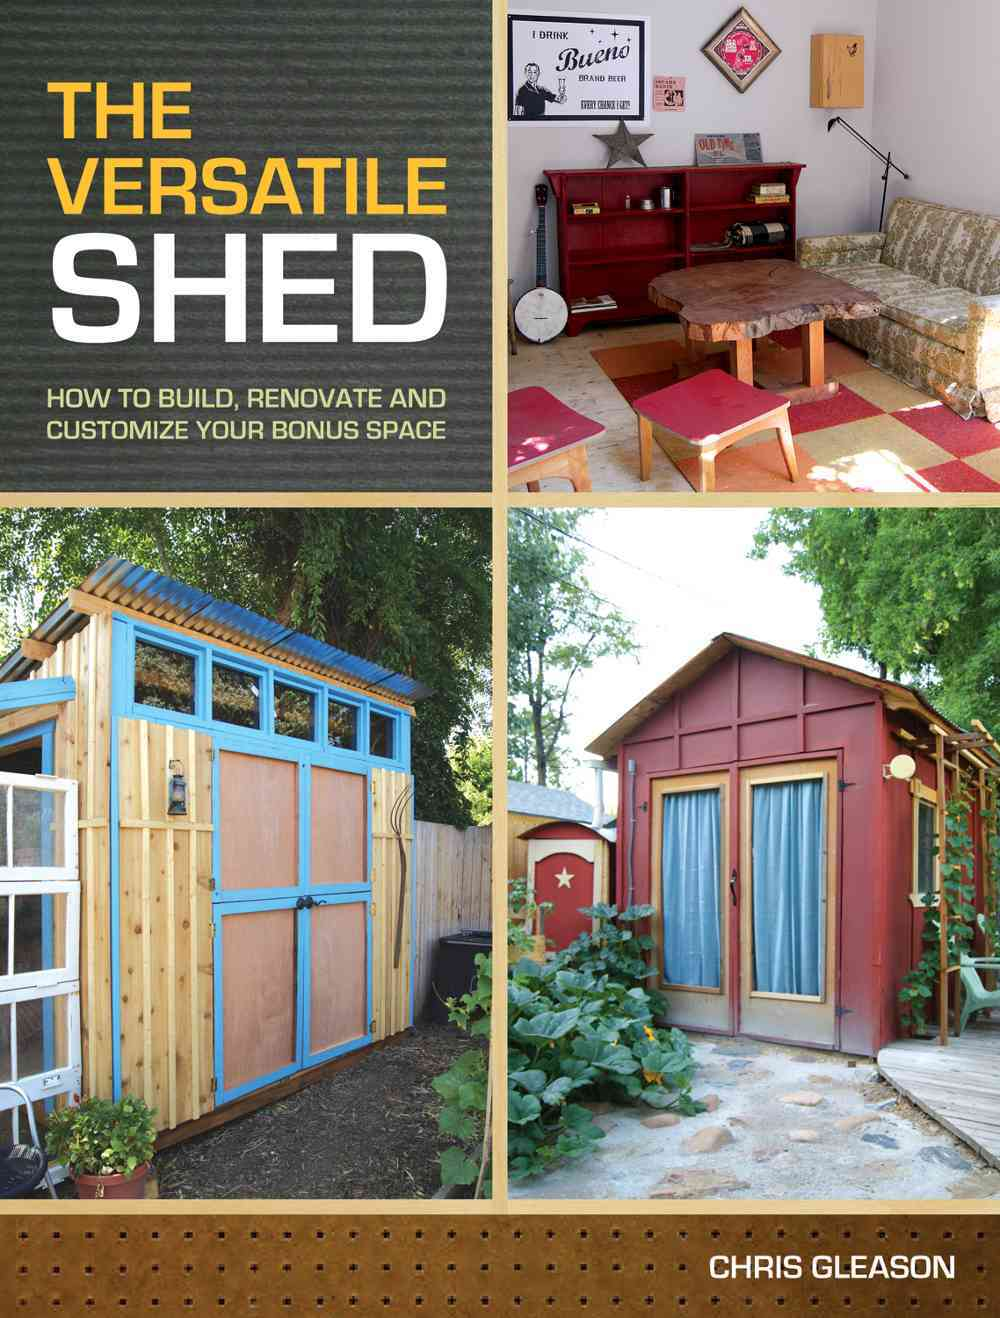 The Versatile Shed: How to Build, Renovate and Customize Your Bonus Space (Paperback)